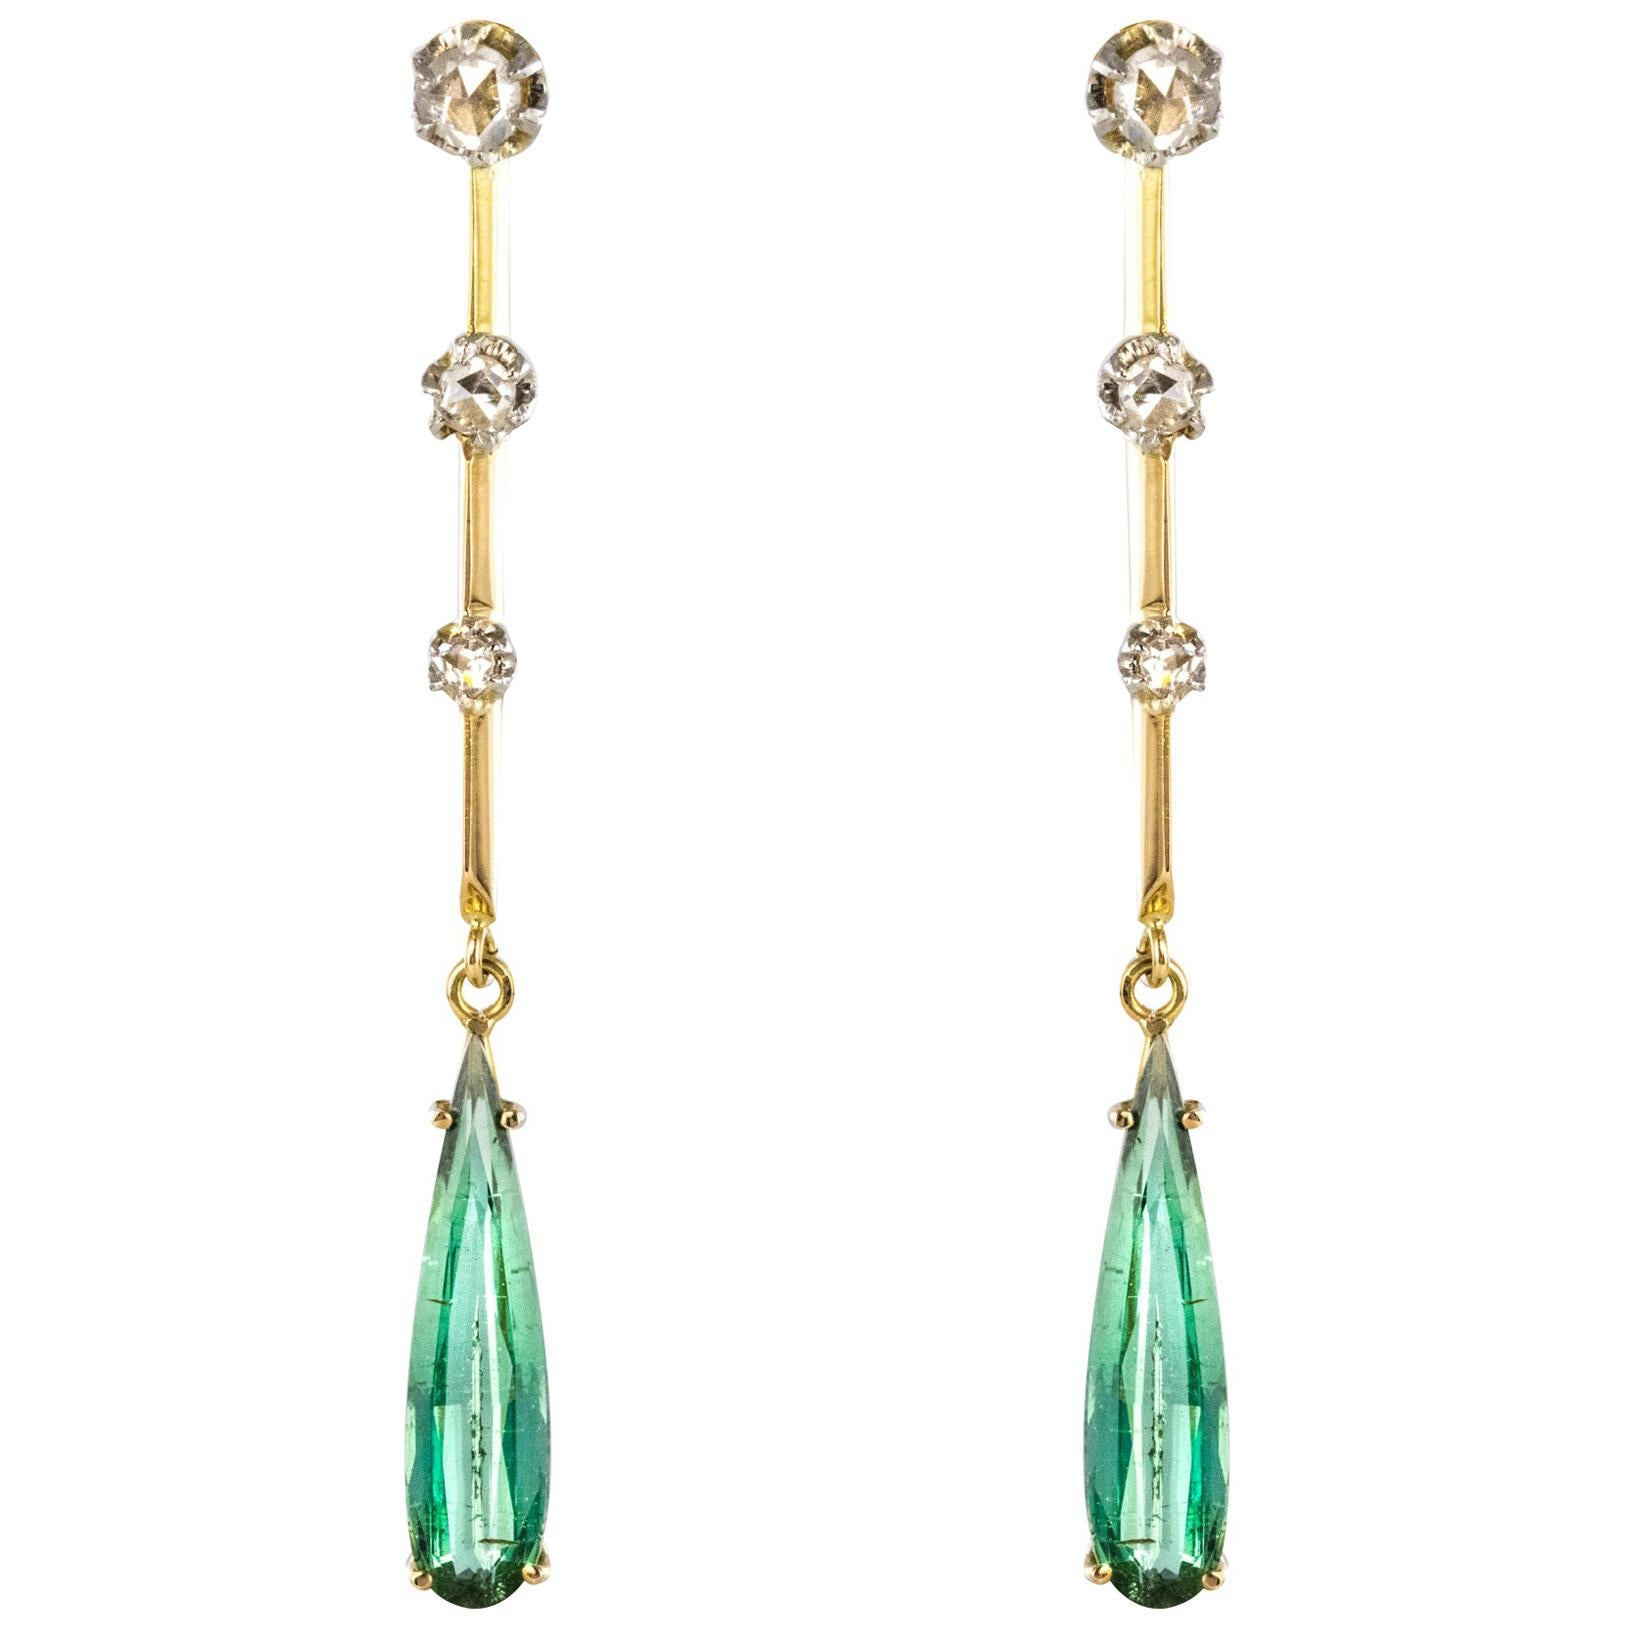 1930s Art Deco Diamonds Tourmaline 18 Karat Yellow Gold Dangle Earrings